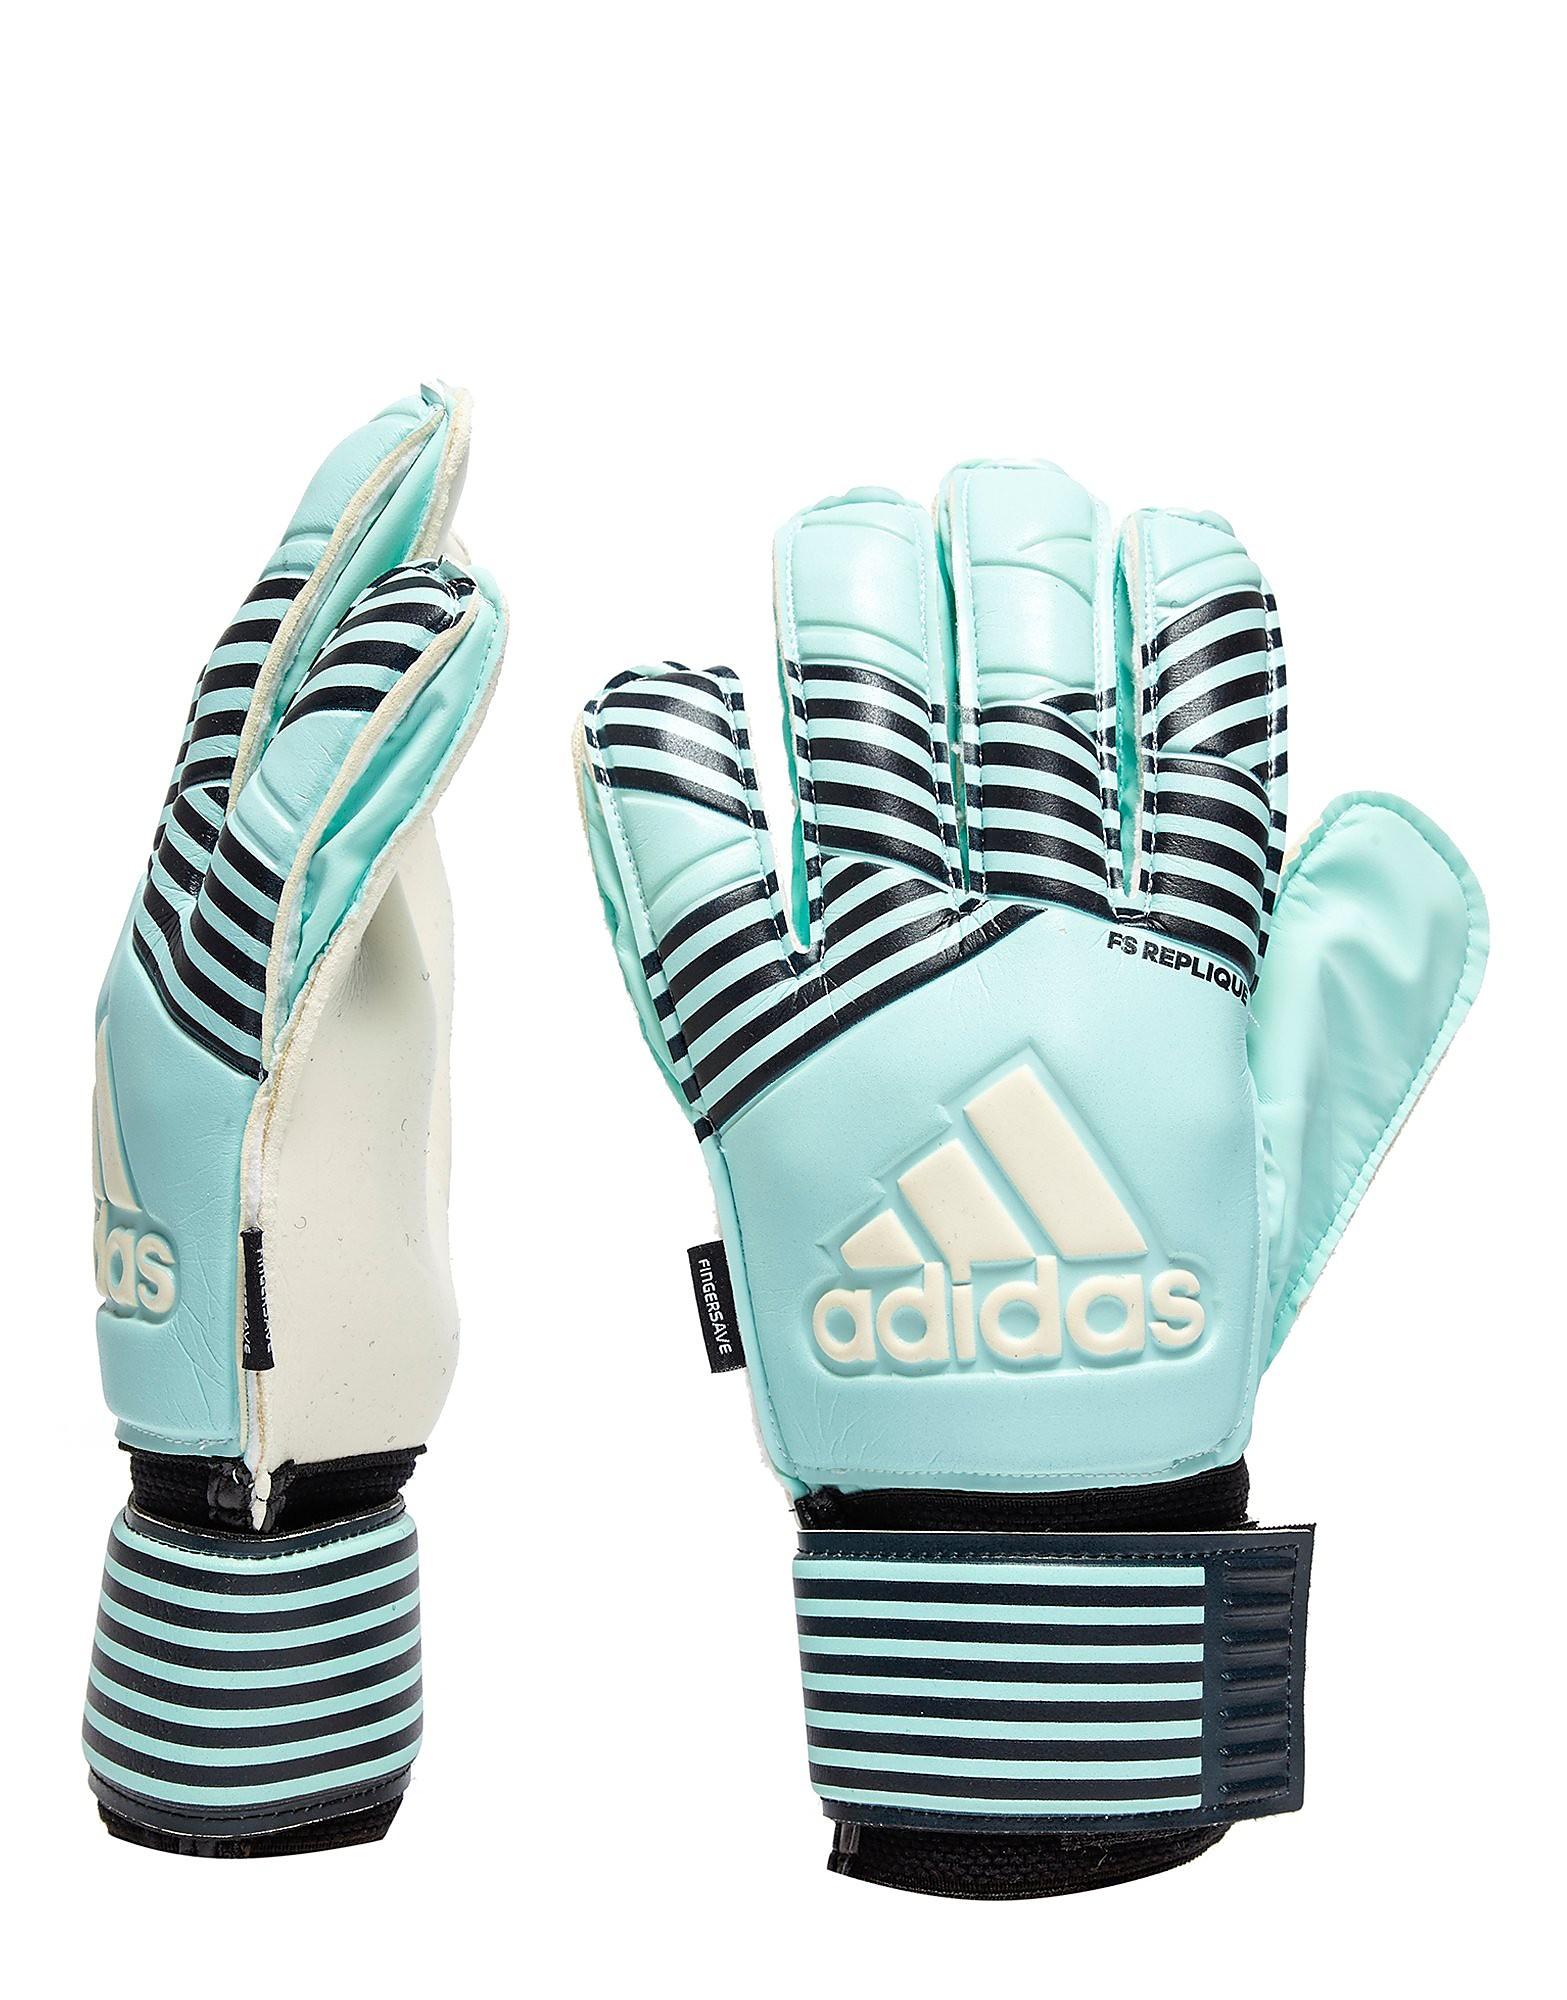 adidas Ace Fingersave Replique Goal Keeper Gloves